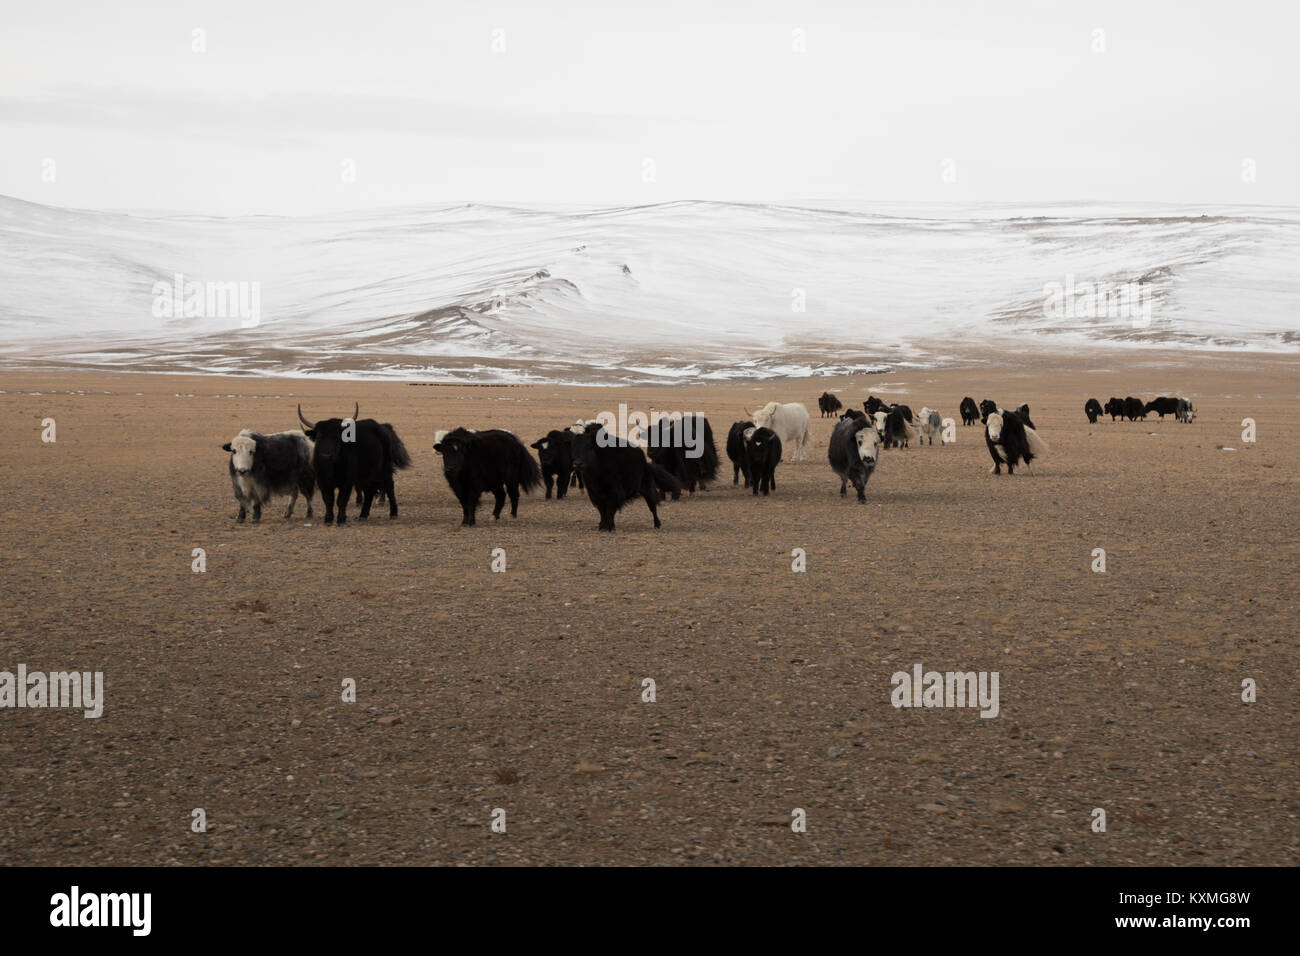 Mongolian black and white yaks Mongolia winter steppes grasslands plains snowy mountains - Stock Image